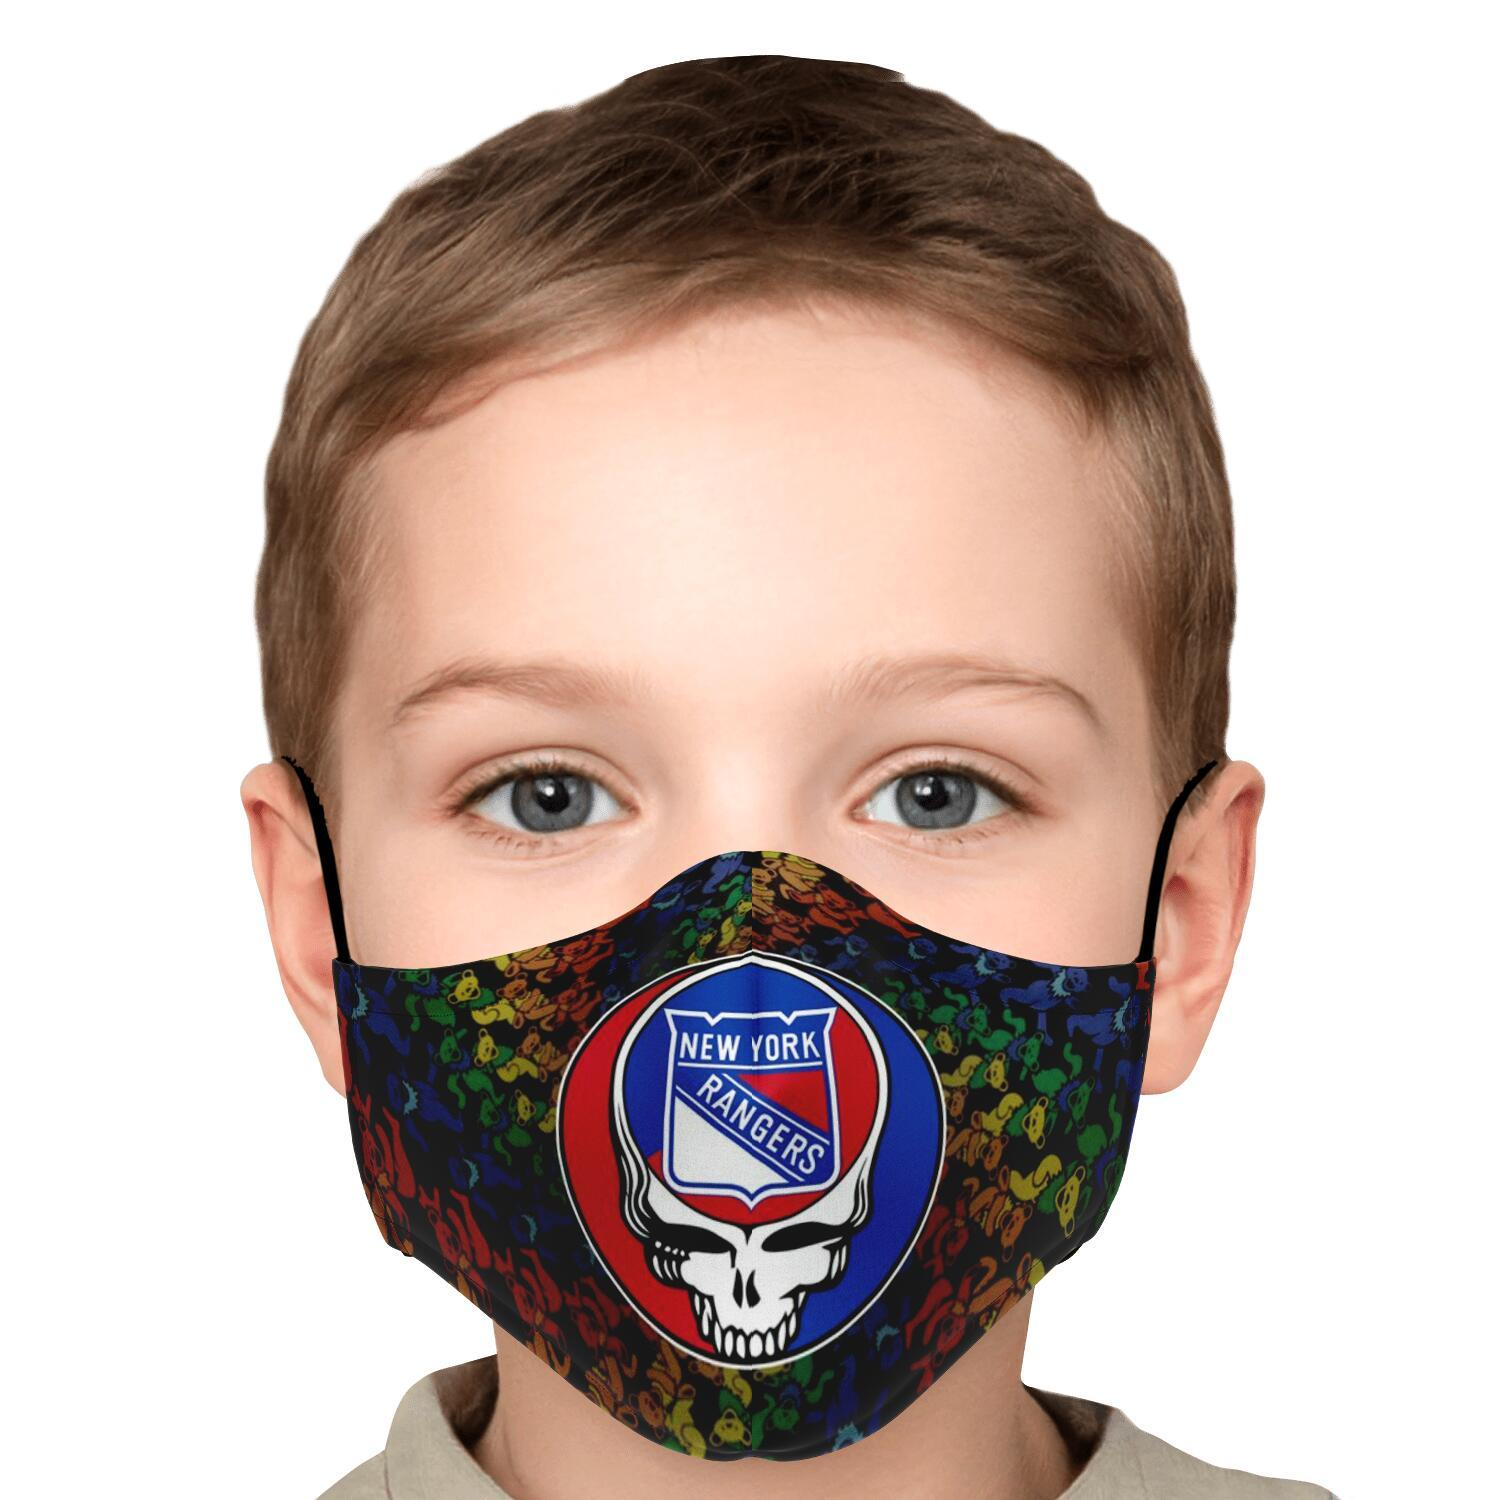 Steal Your Face Grateful Dead New York Rangers Face Mask 5